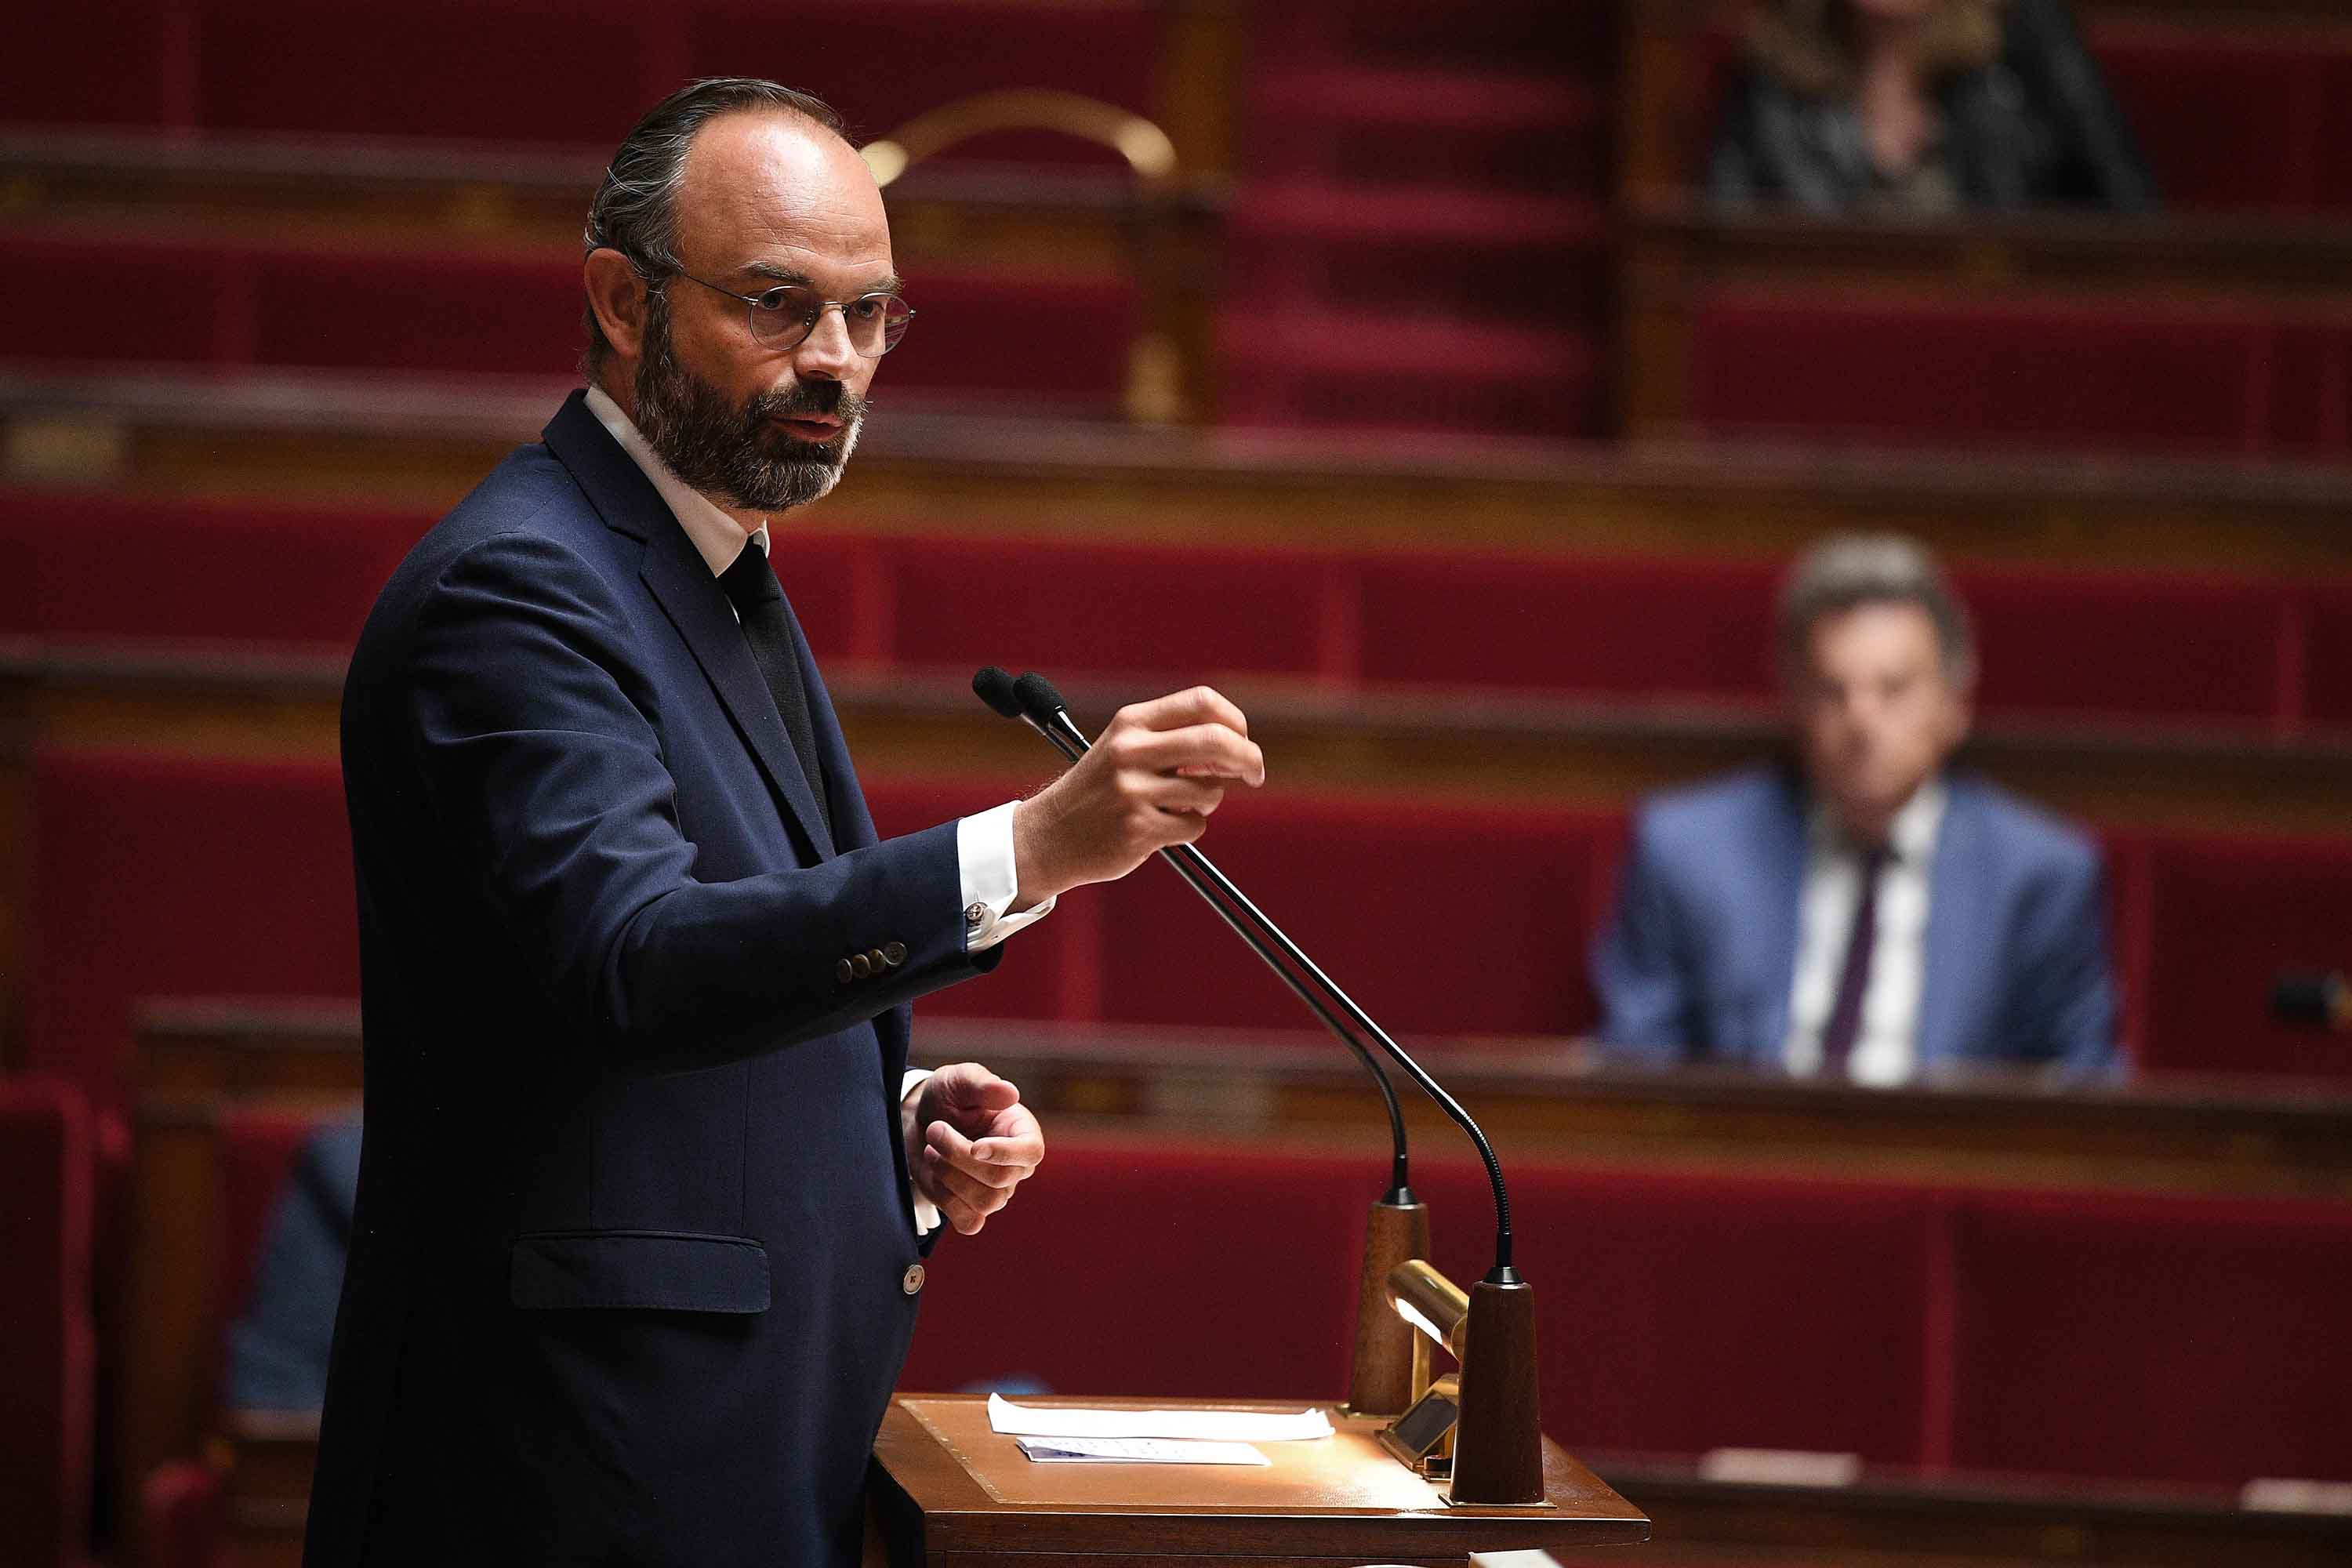 French Prime Minister Edouard Philippe speaks during a debate on the French government's plan to exit from the lockdown situation at the French National Assembly in Paris on April 28.